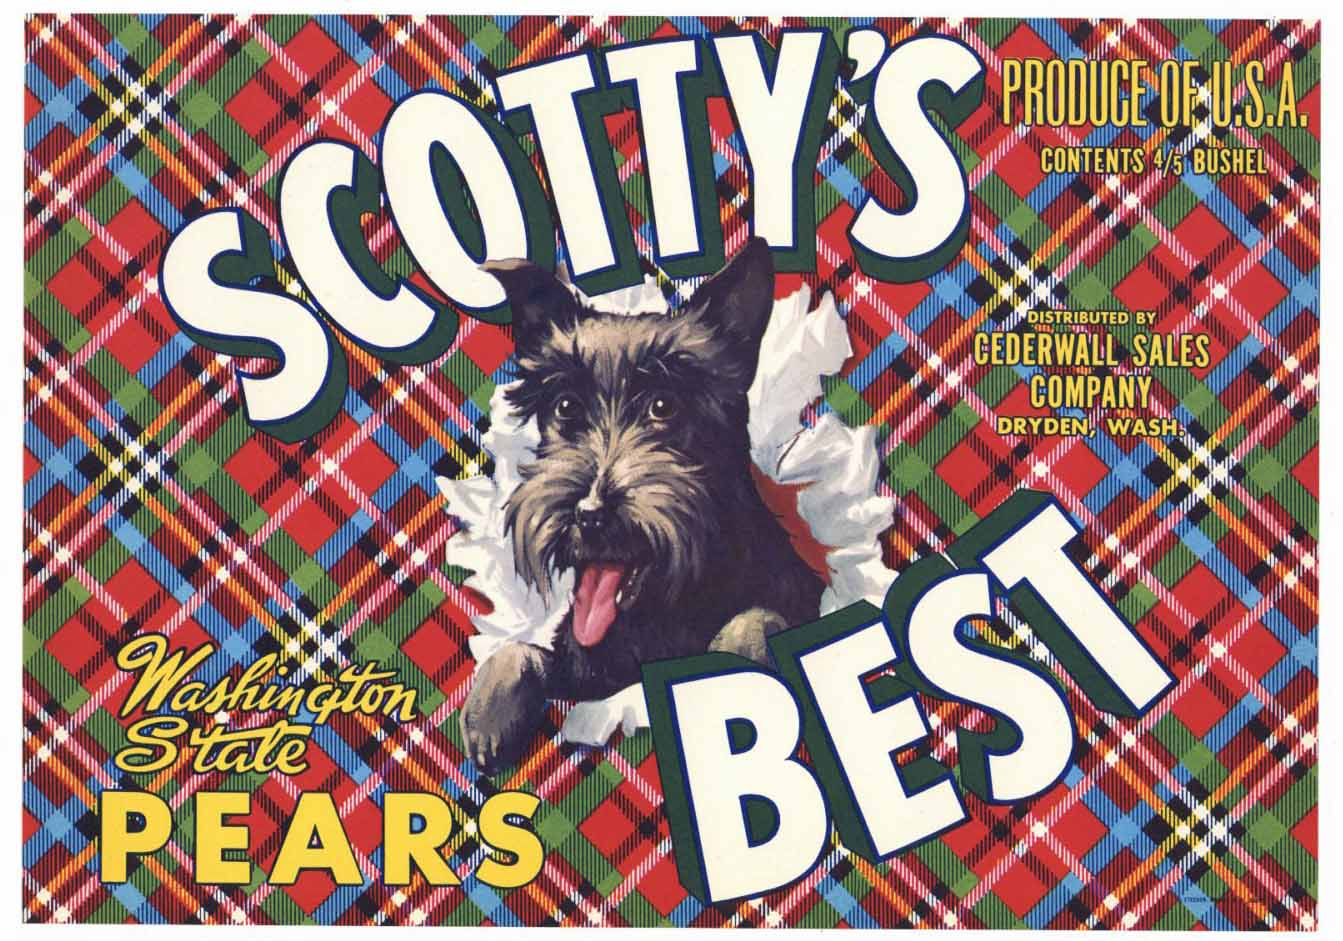 Scotty's Best Brand Vintage Dryden Washington Pear Crate Label